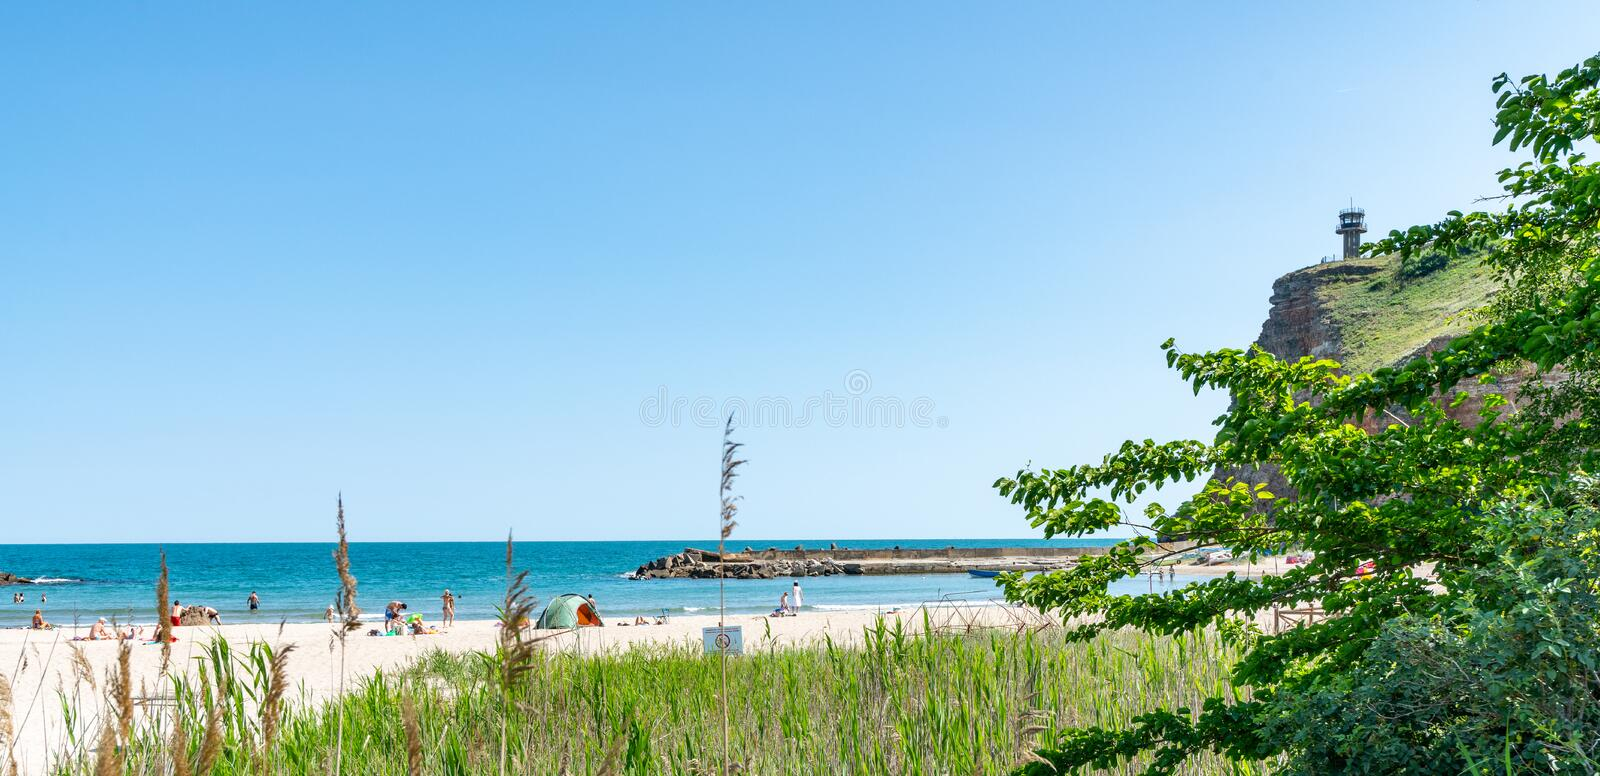 Bolata bay at the foot of Kaliakr cape in Bulgaria royalty free stock image